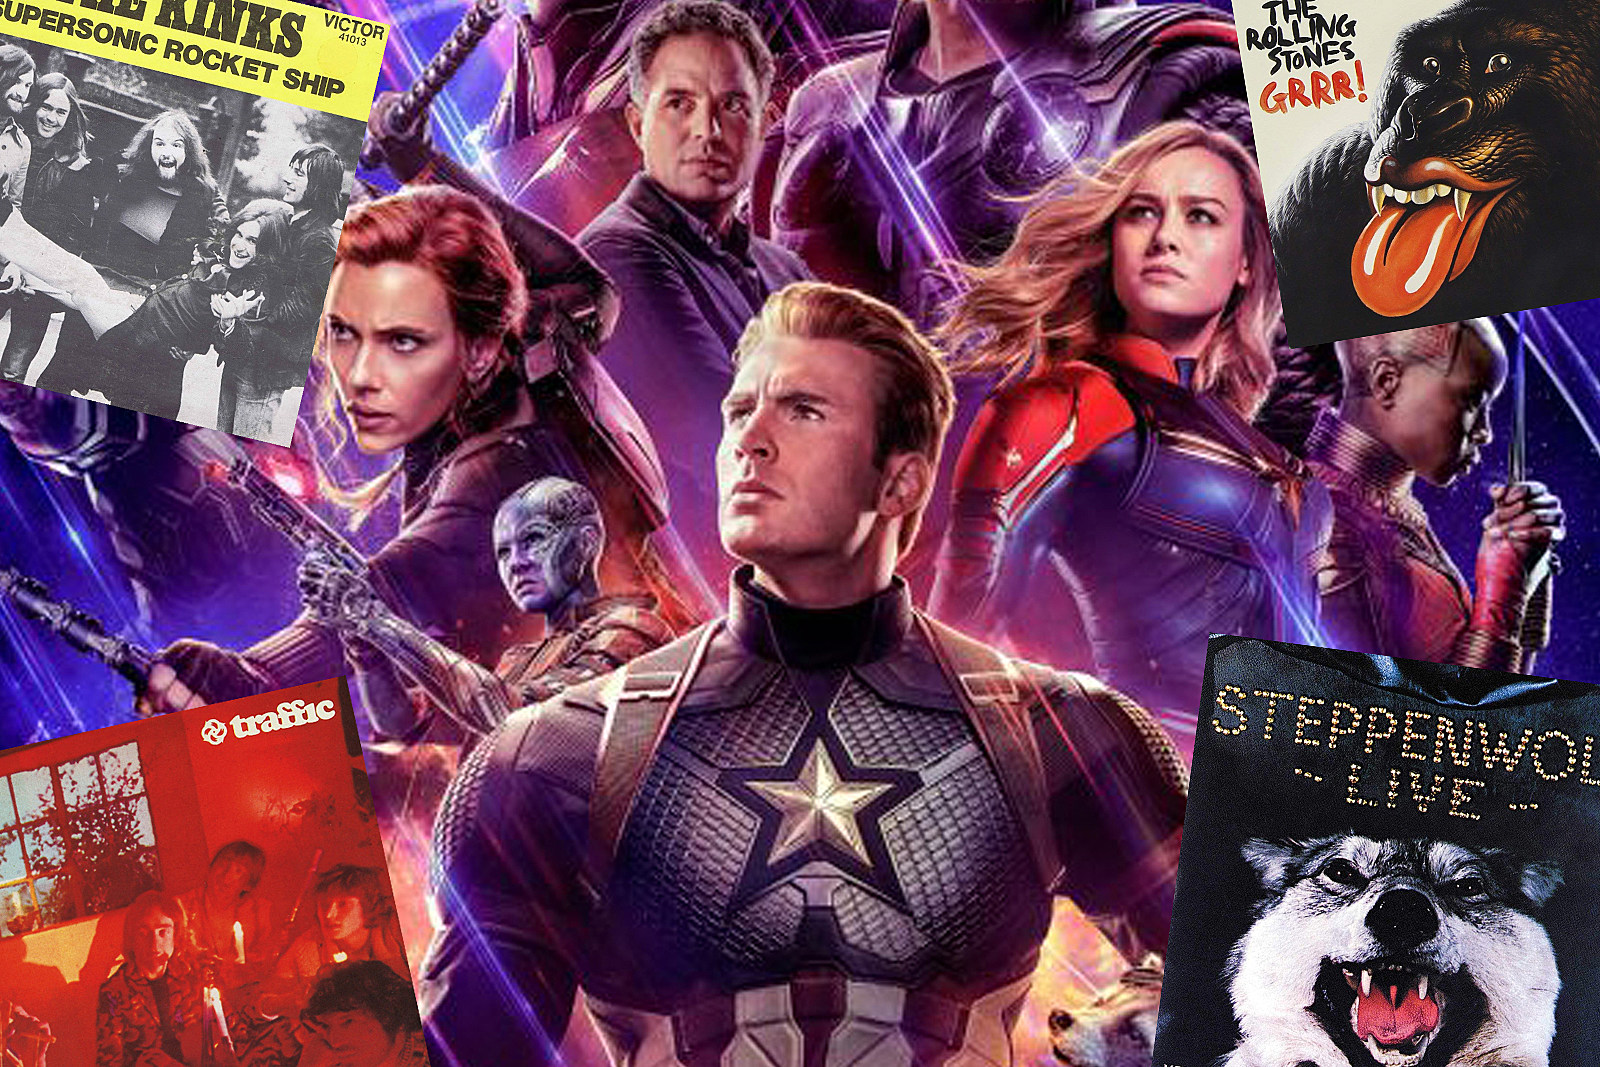 A Guide to the Classic Rock Songs in 'Avengers: Endgame' (NO SPOILERS)